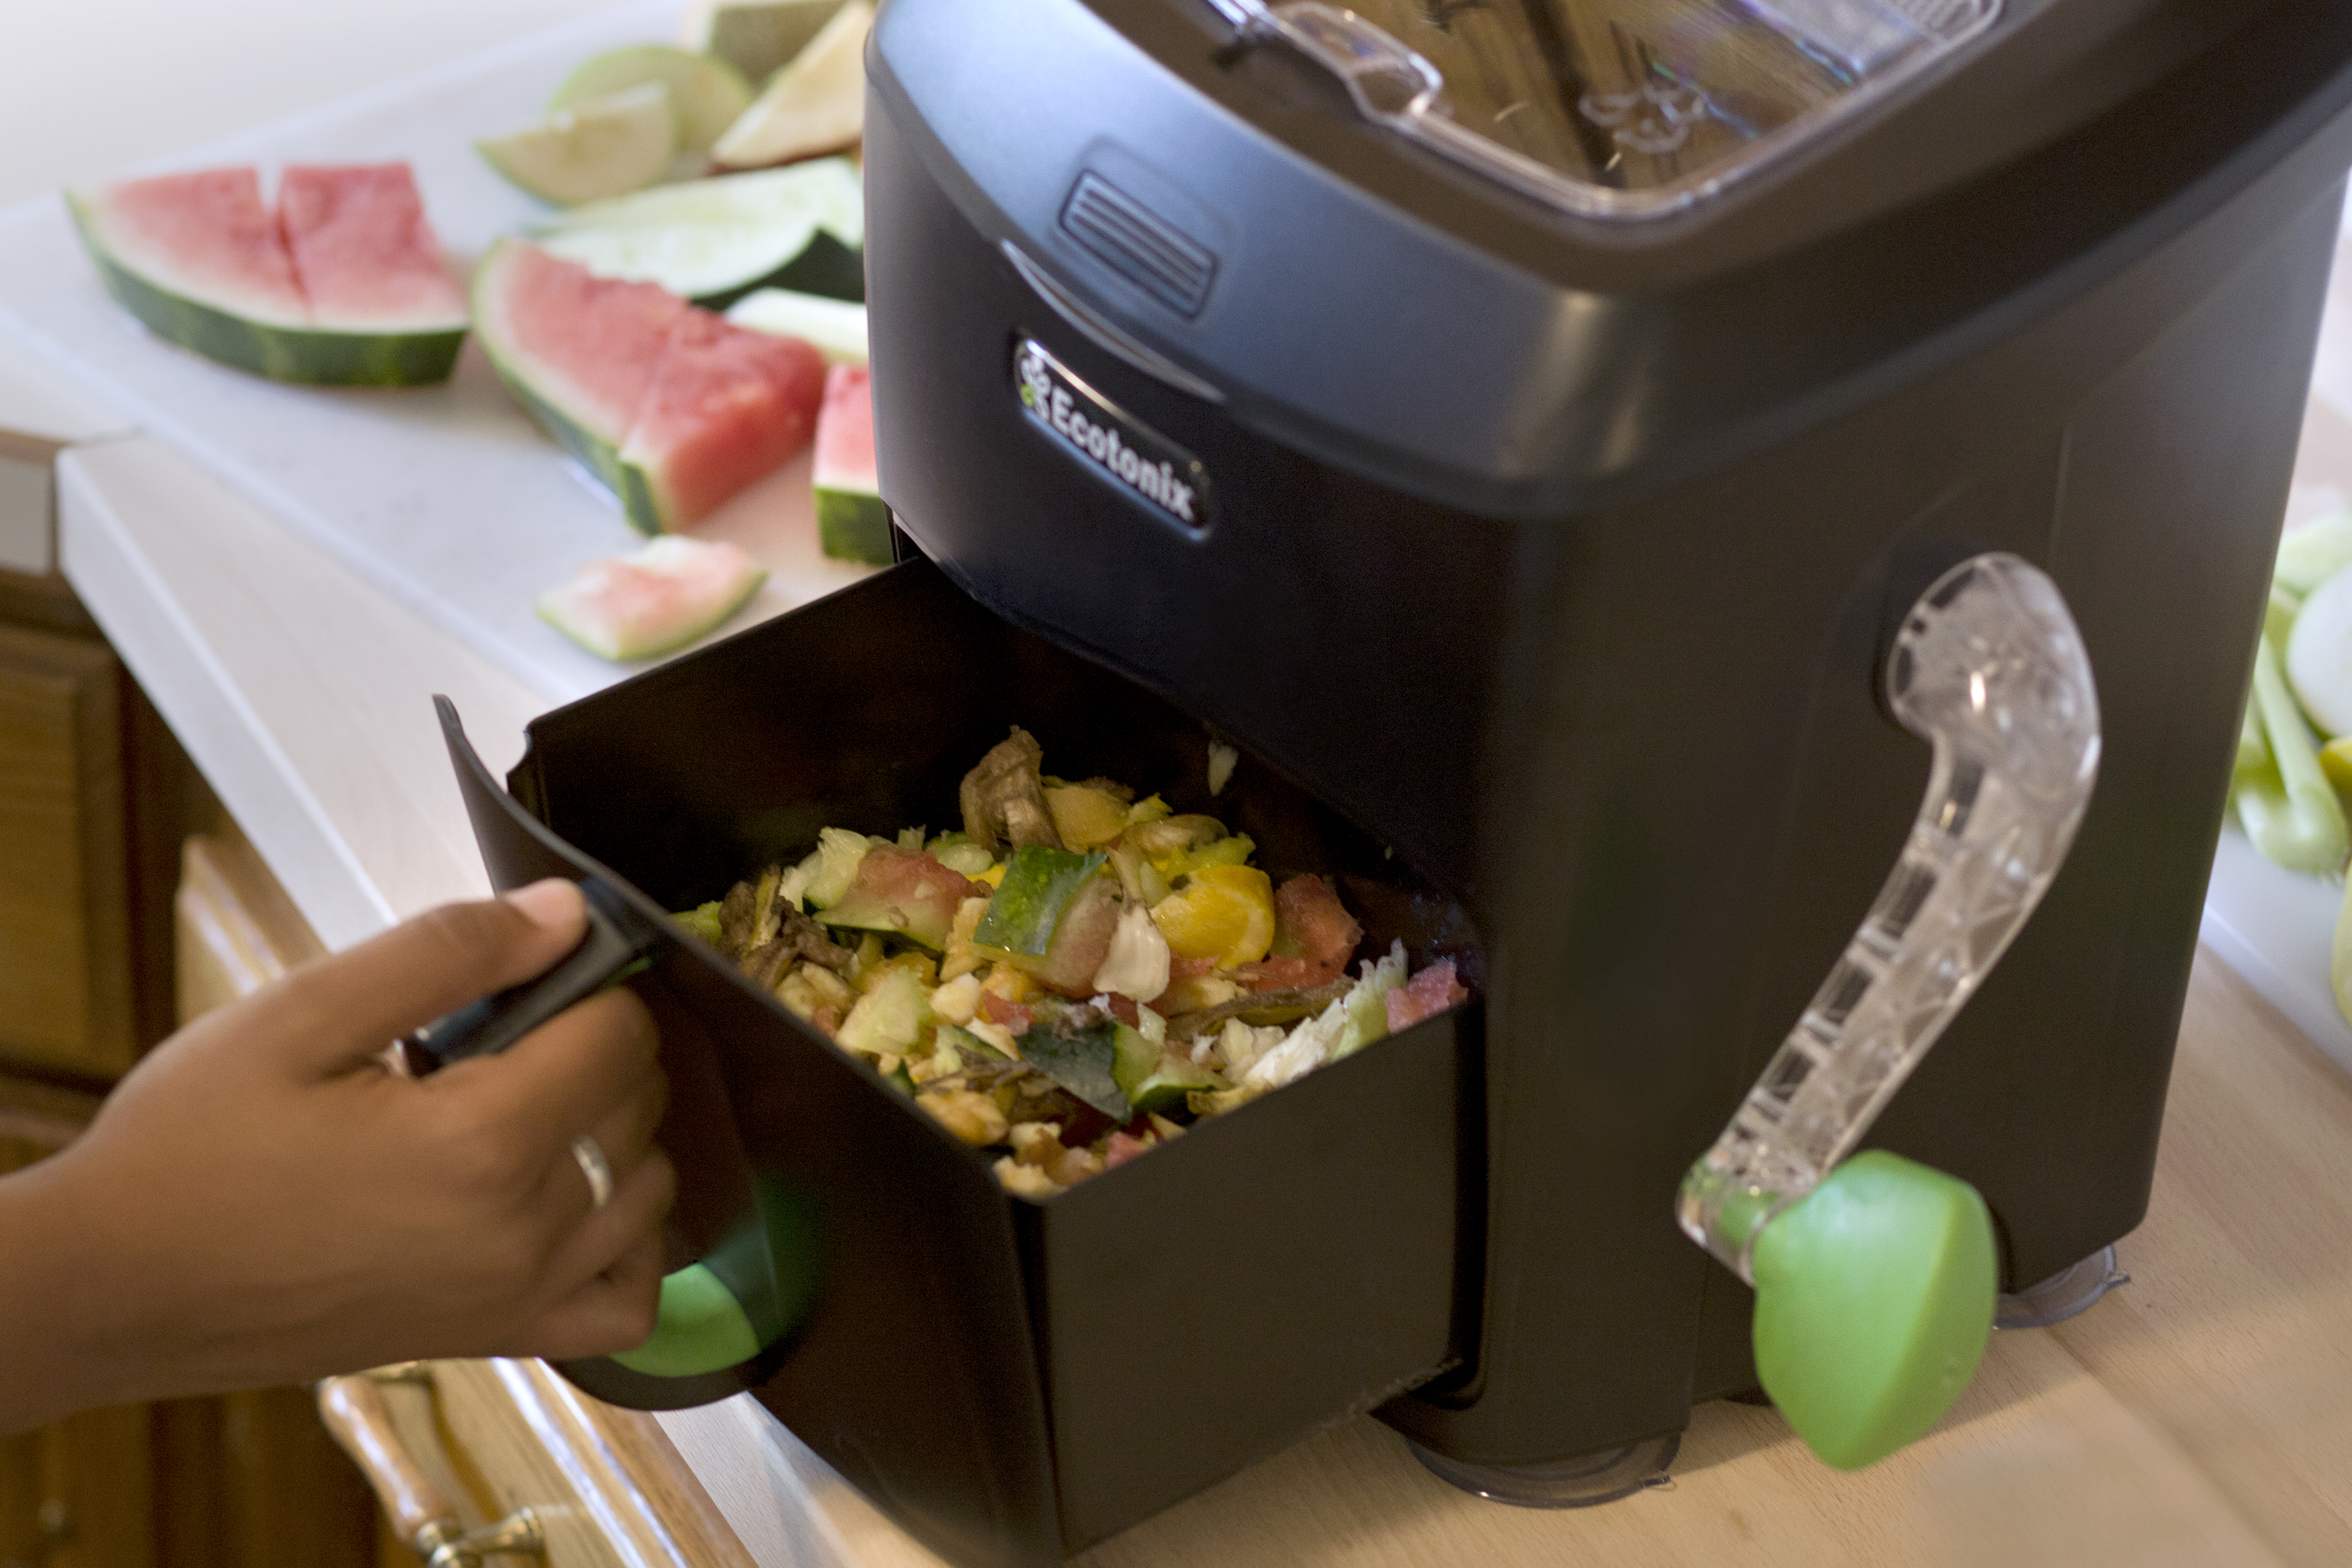 Green Cycler fast composter